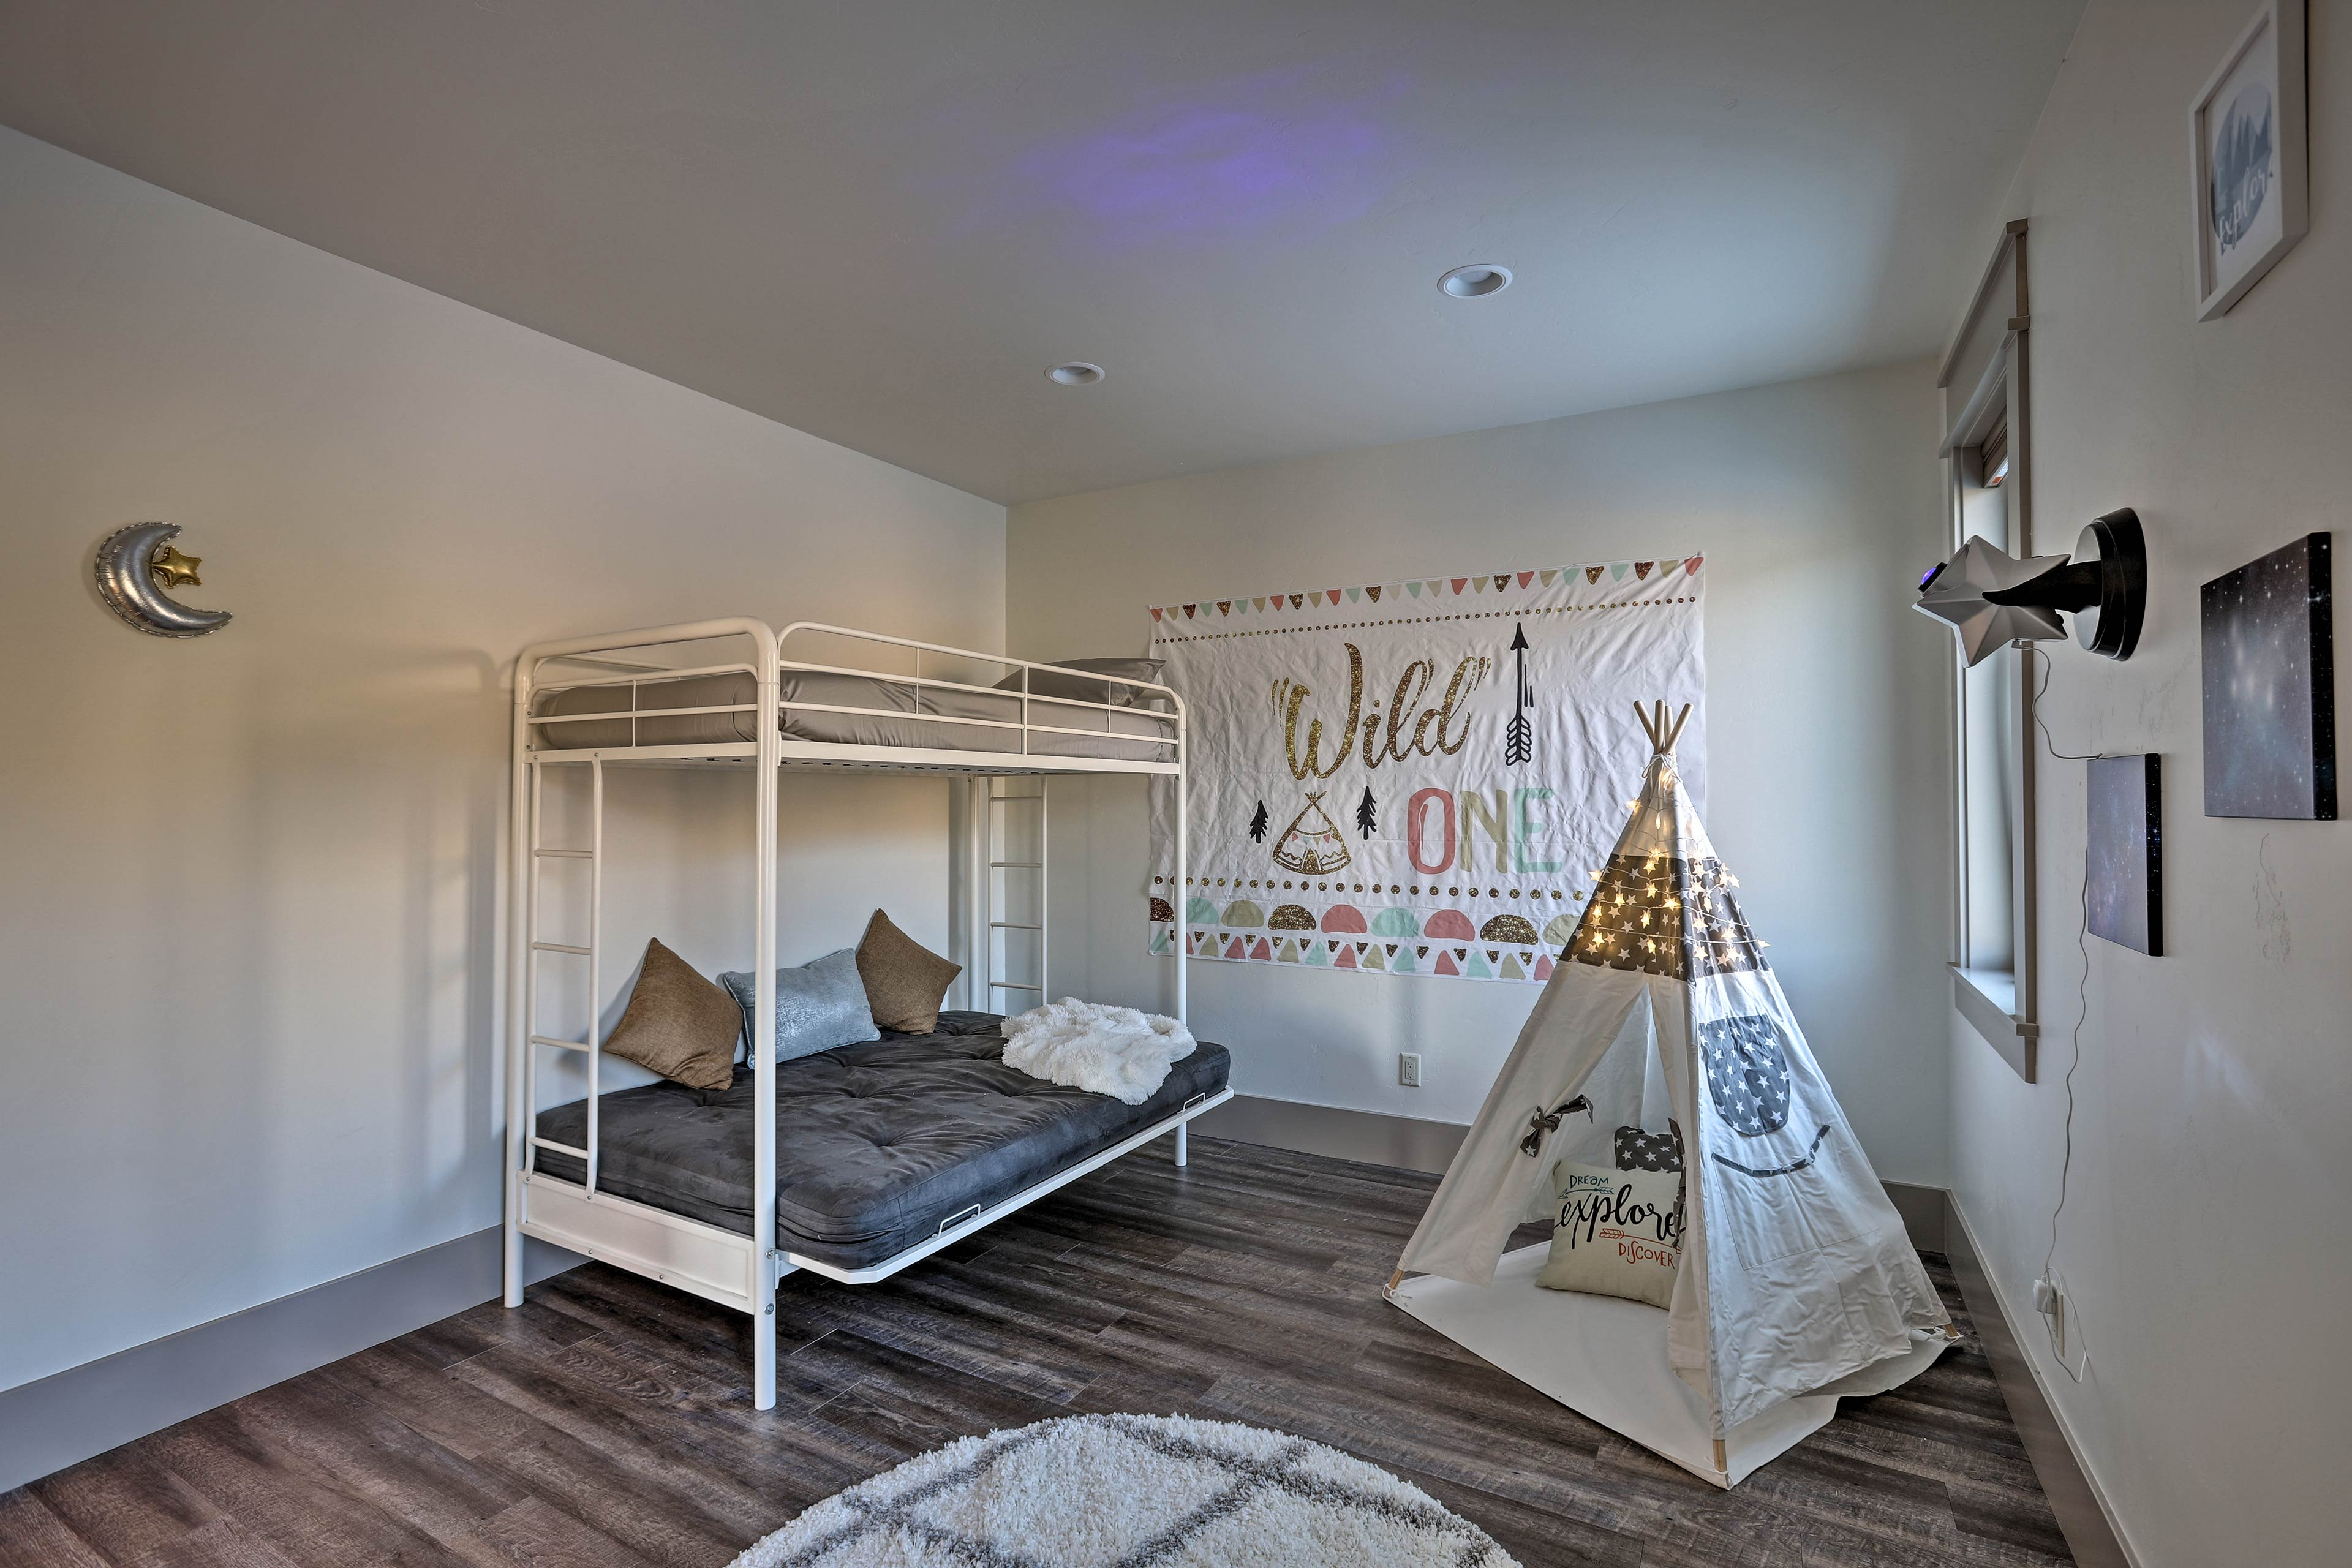 The fifth bedroom features a twin-over-full bunk bed & a kids' teepee.